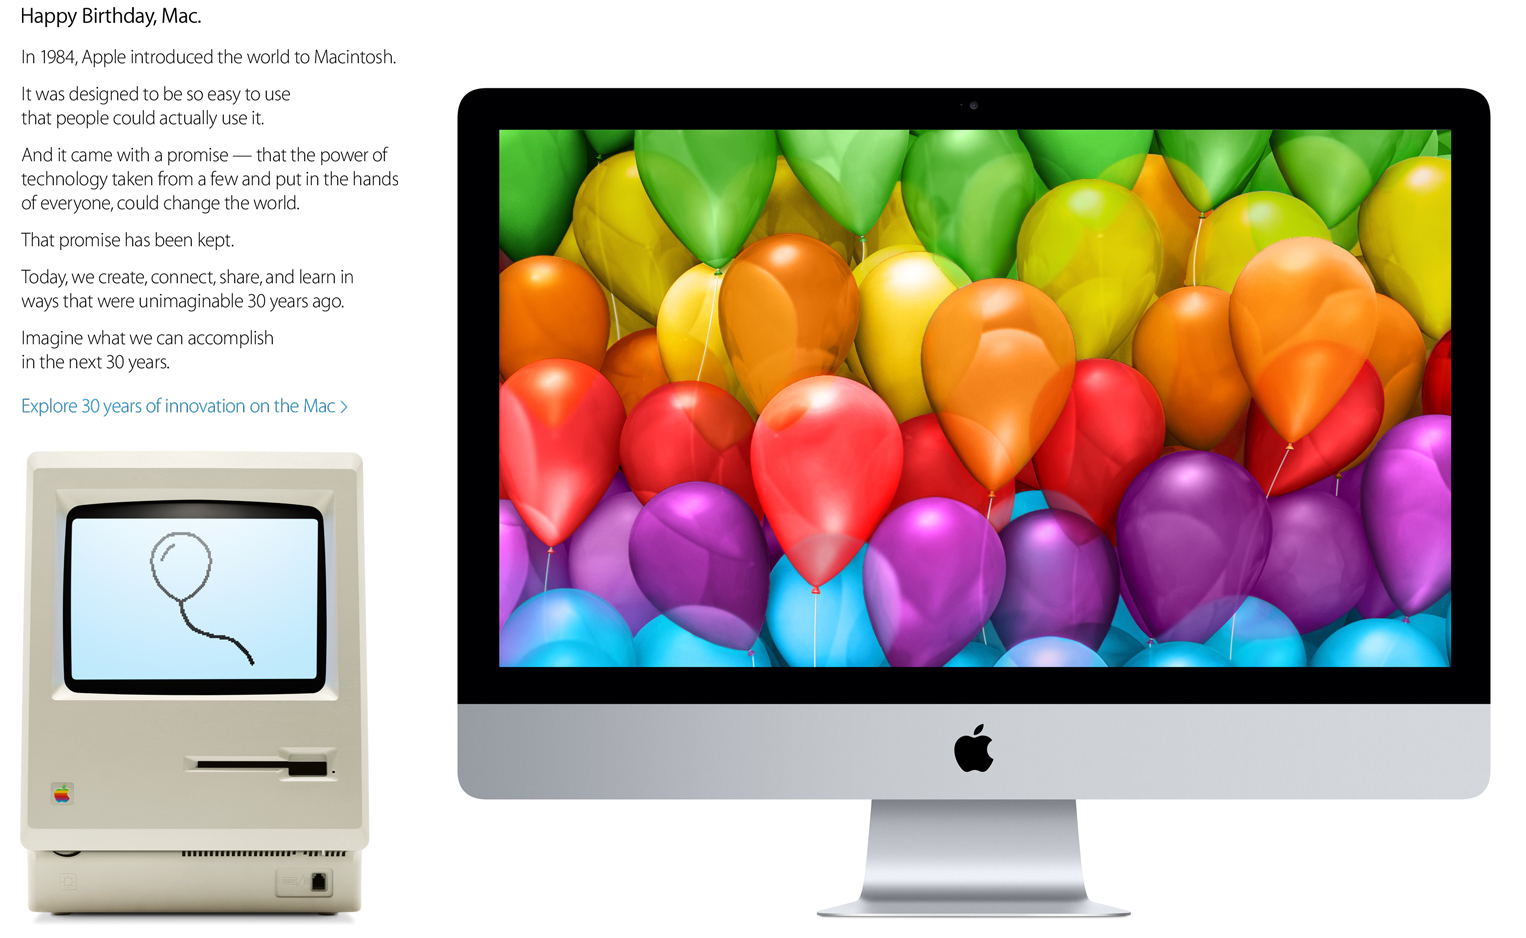 happy-birthday-mac-apple-macintosh